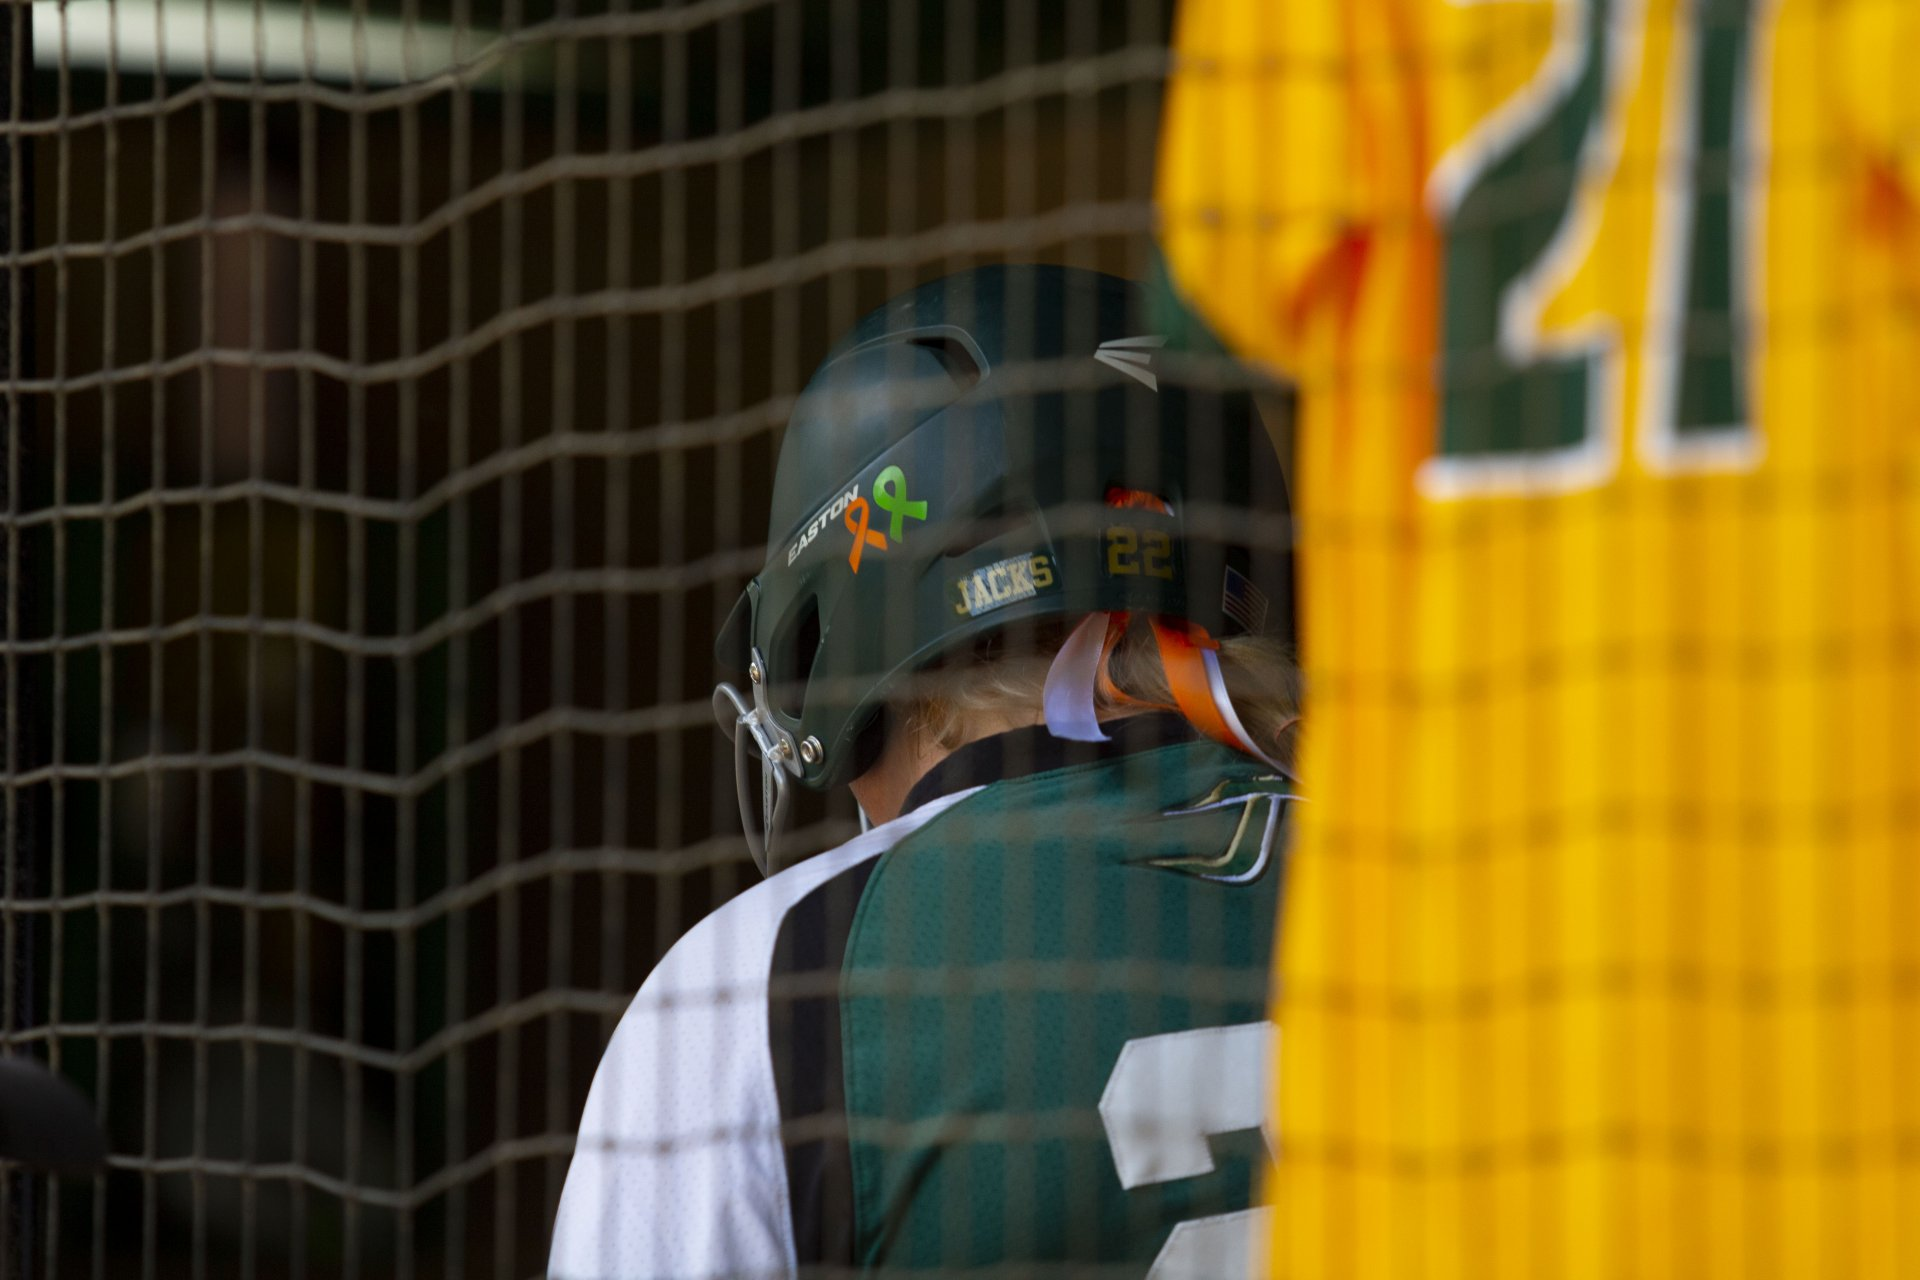 Sophomore Humboldt State softball player Anna Brondos walks through the dugout past Evelyn Andrew's number 21 jersey with ribbons on her helmet to remember her during the Lumberjacks game against Chico State on Feb. 22 at HSU Softball Field. | Photo by Thomas Lal